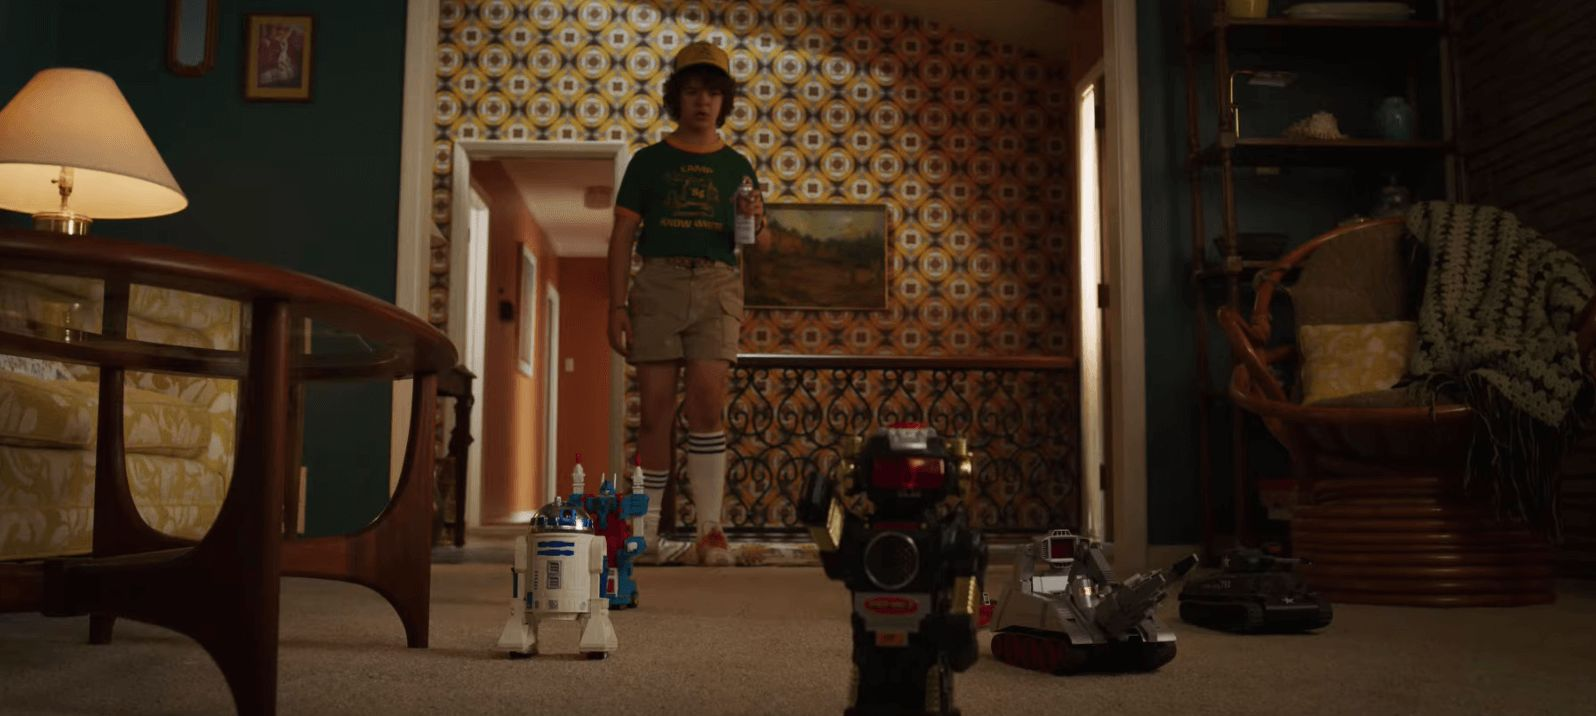 Image may contain: Stranger Things season 3 trailer, Stranger Things 3, Stranger Things, Netflix, release date, trailer, Dustin, Wood, Electronics, Apparel, Clothing, Shorts, Flooring, Person, Human